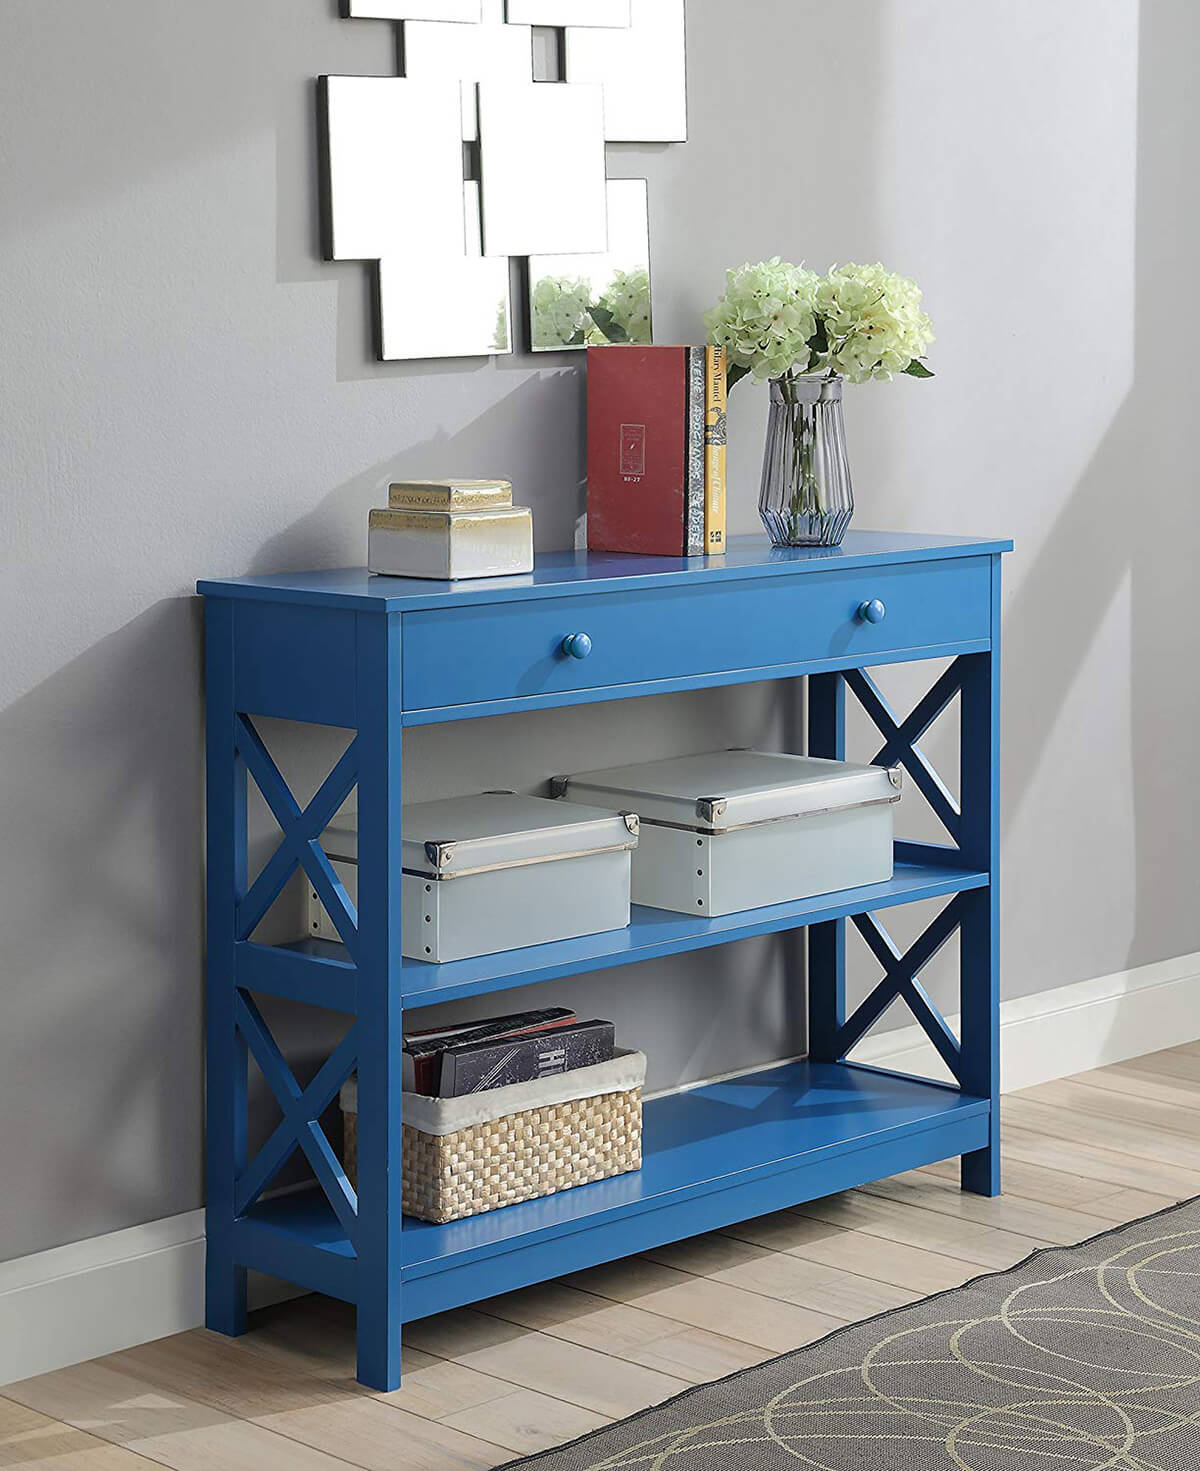 Vivid and Colorful Oxford Console Table